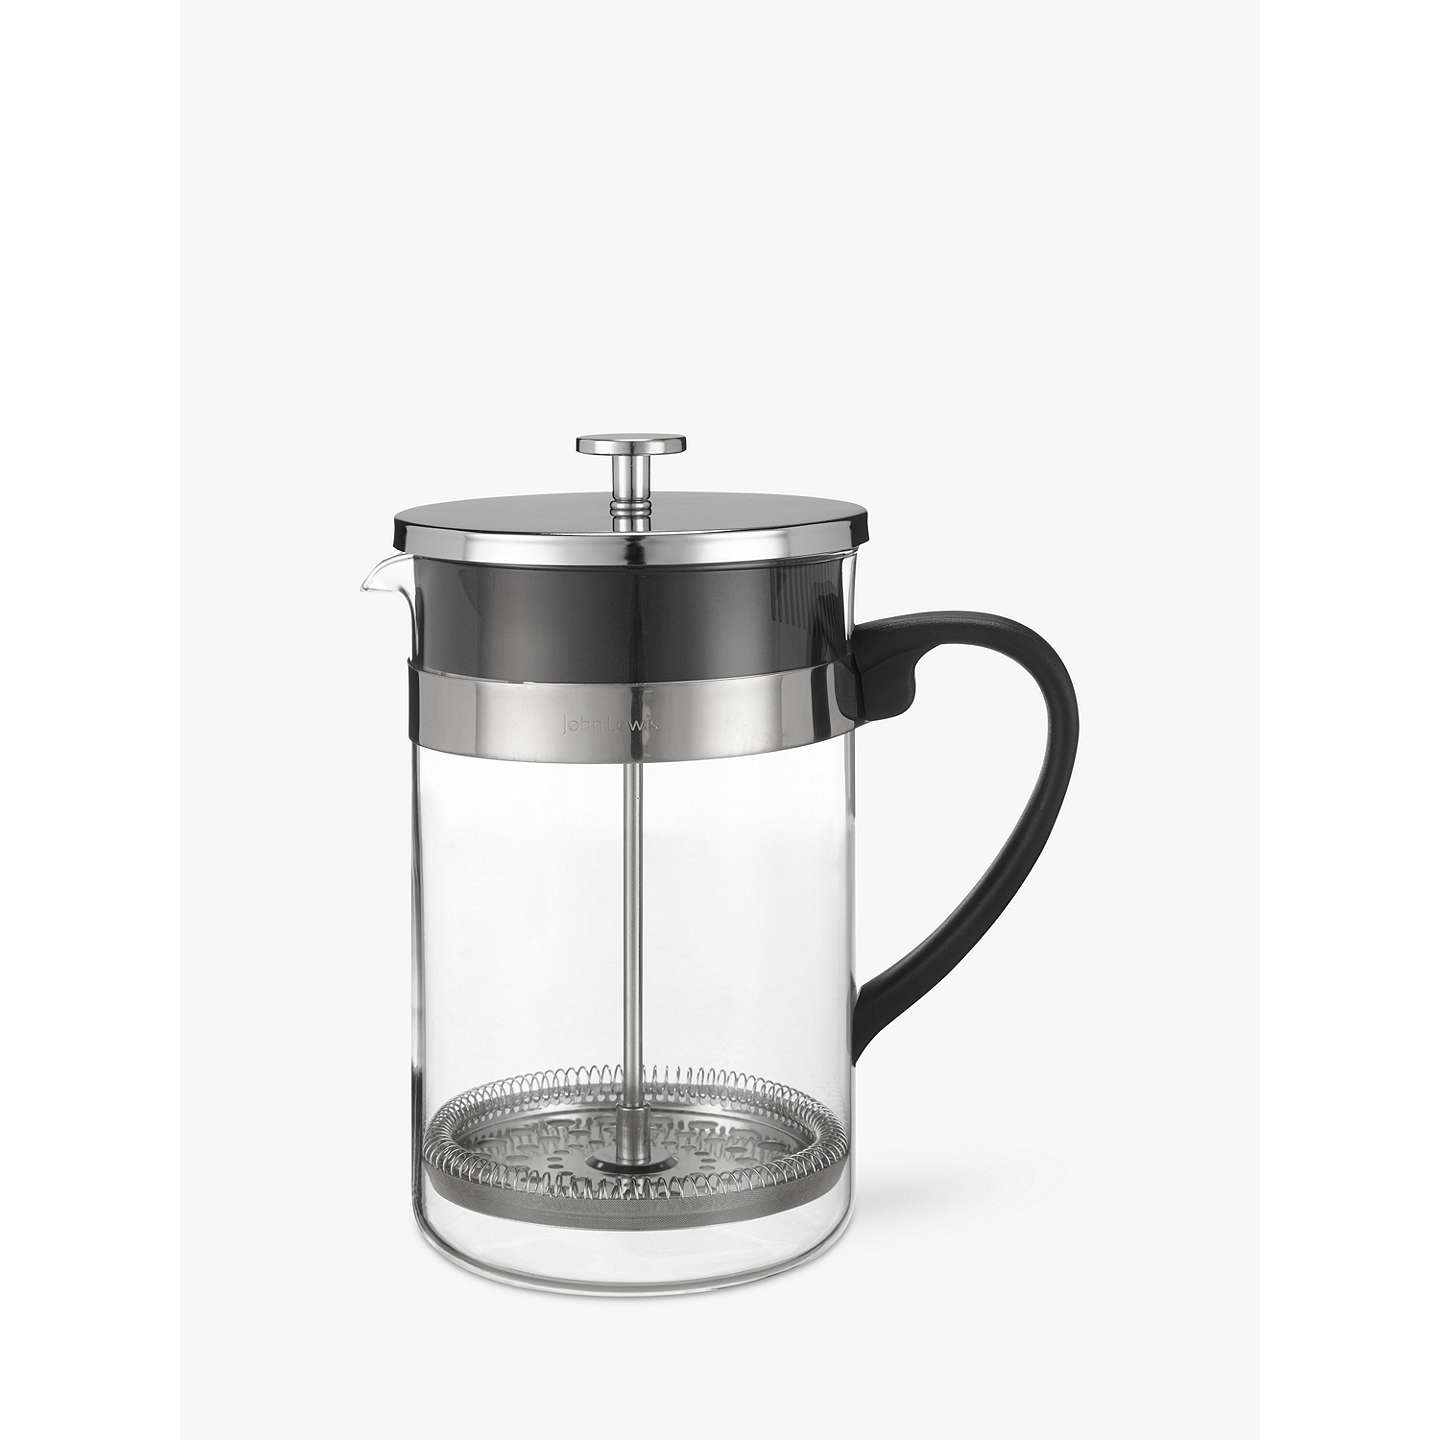 house by john lewis cafetiere 12 cup at john lewis. Black Bedroom Furniture Sets. Home Design Ideas